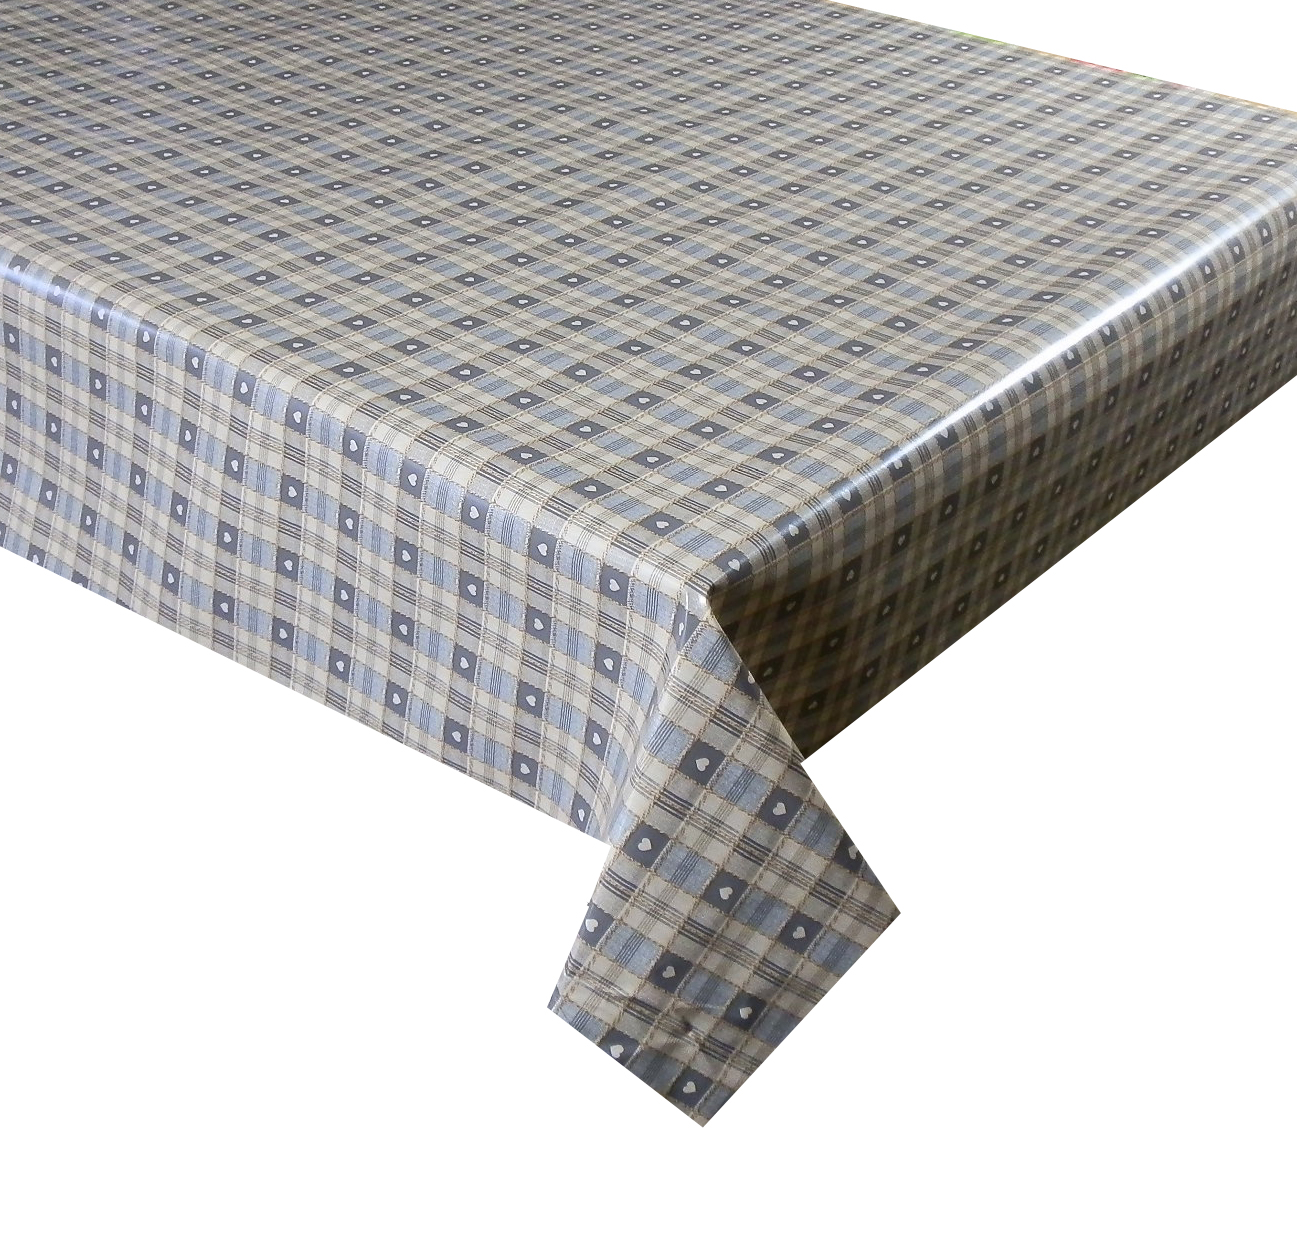 Vinyl Tablecloths for Picnic Tables | Table Cloths | Vinyl Tablecloths